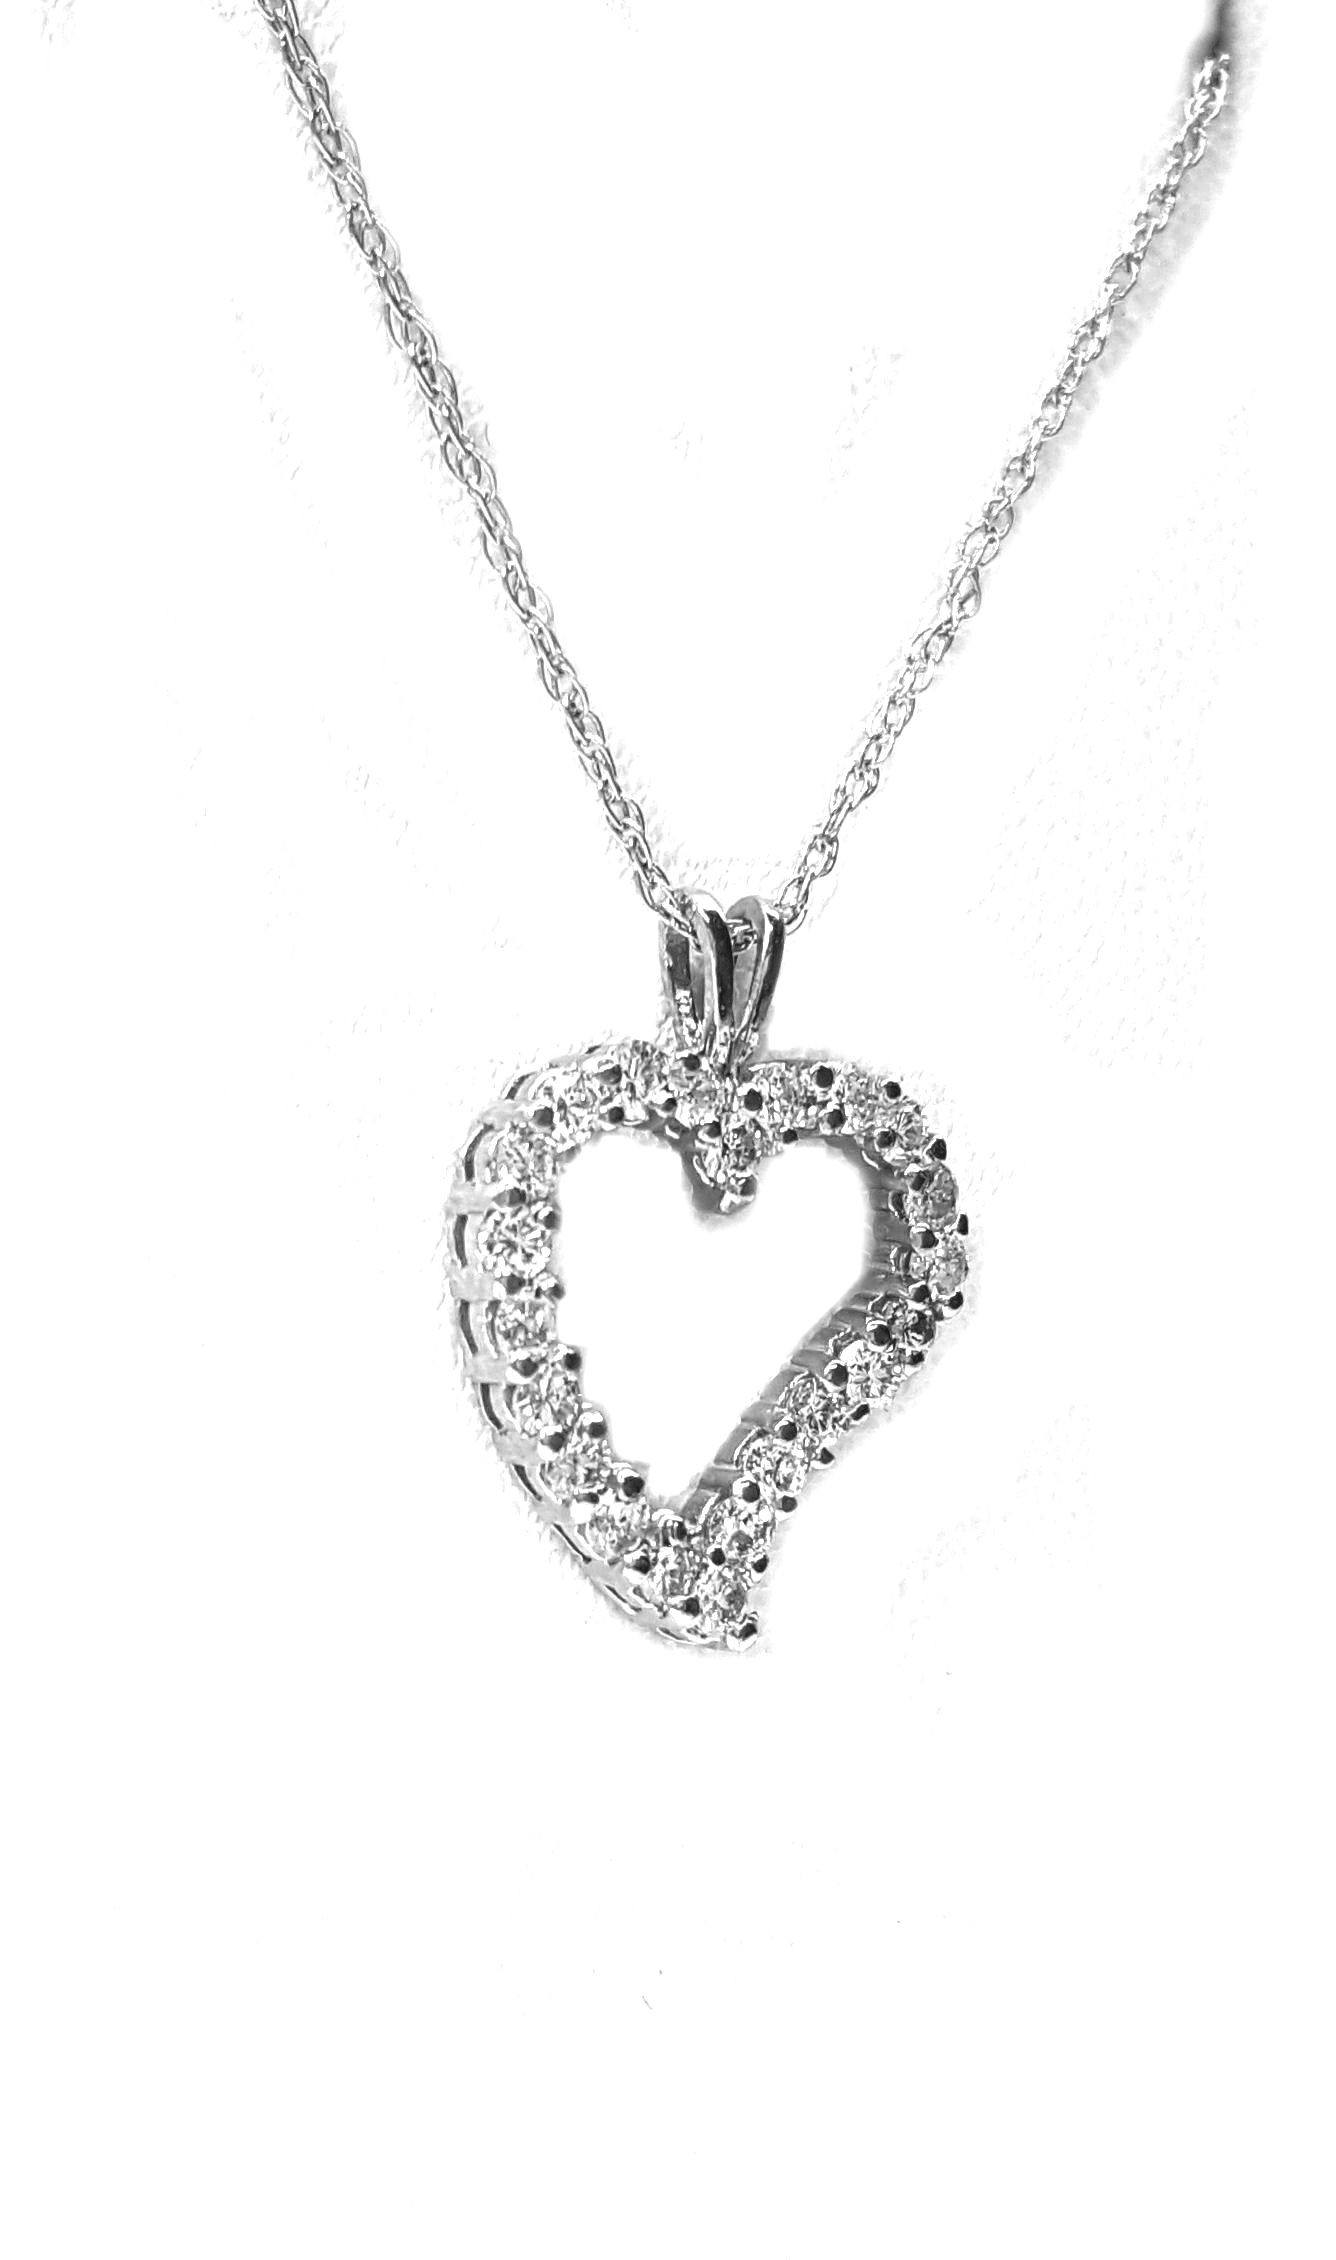 Heart Pendant in 14kt. white gold 78pts. diamonds.